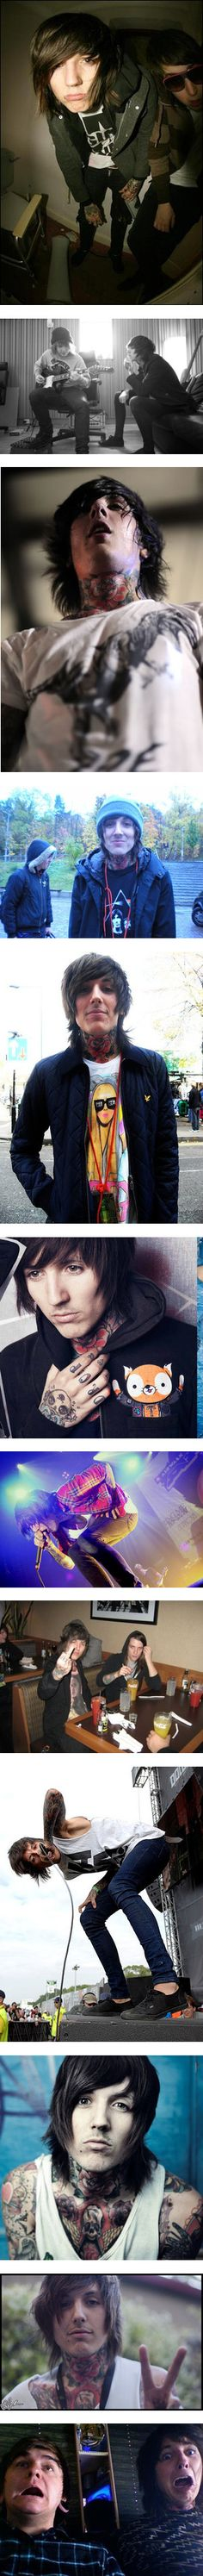 """""""Oliver Sykes 2!"""" by asyousleep ❤ liked on Polyvore"""